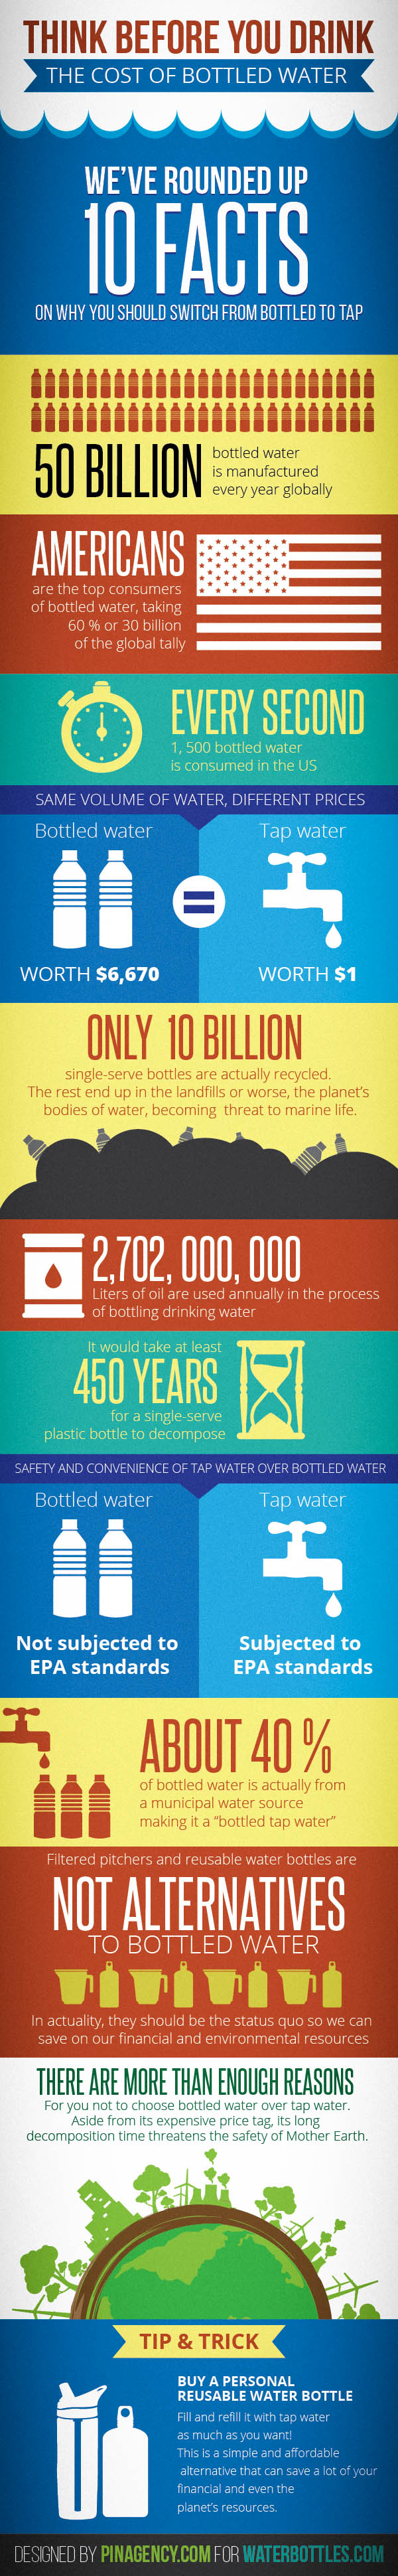 Think-Before-You-Drink-The-Costs-of-Bottled-Water